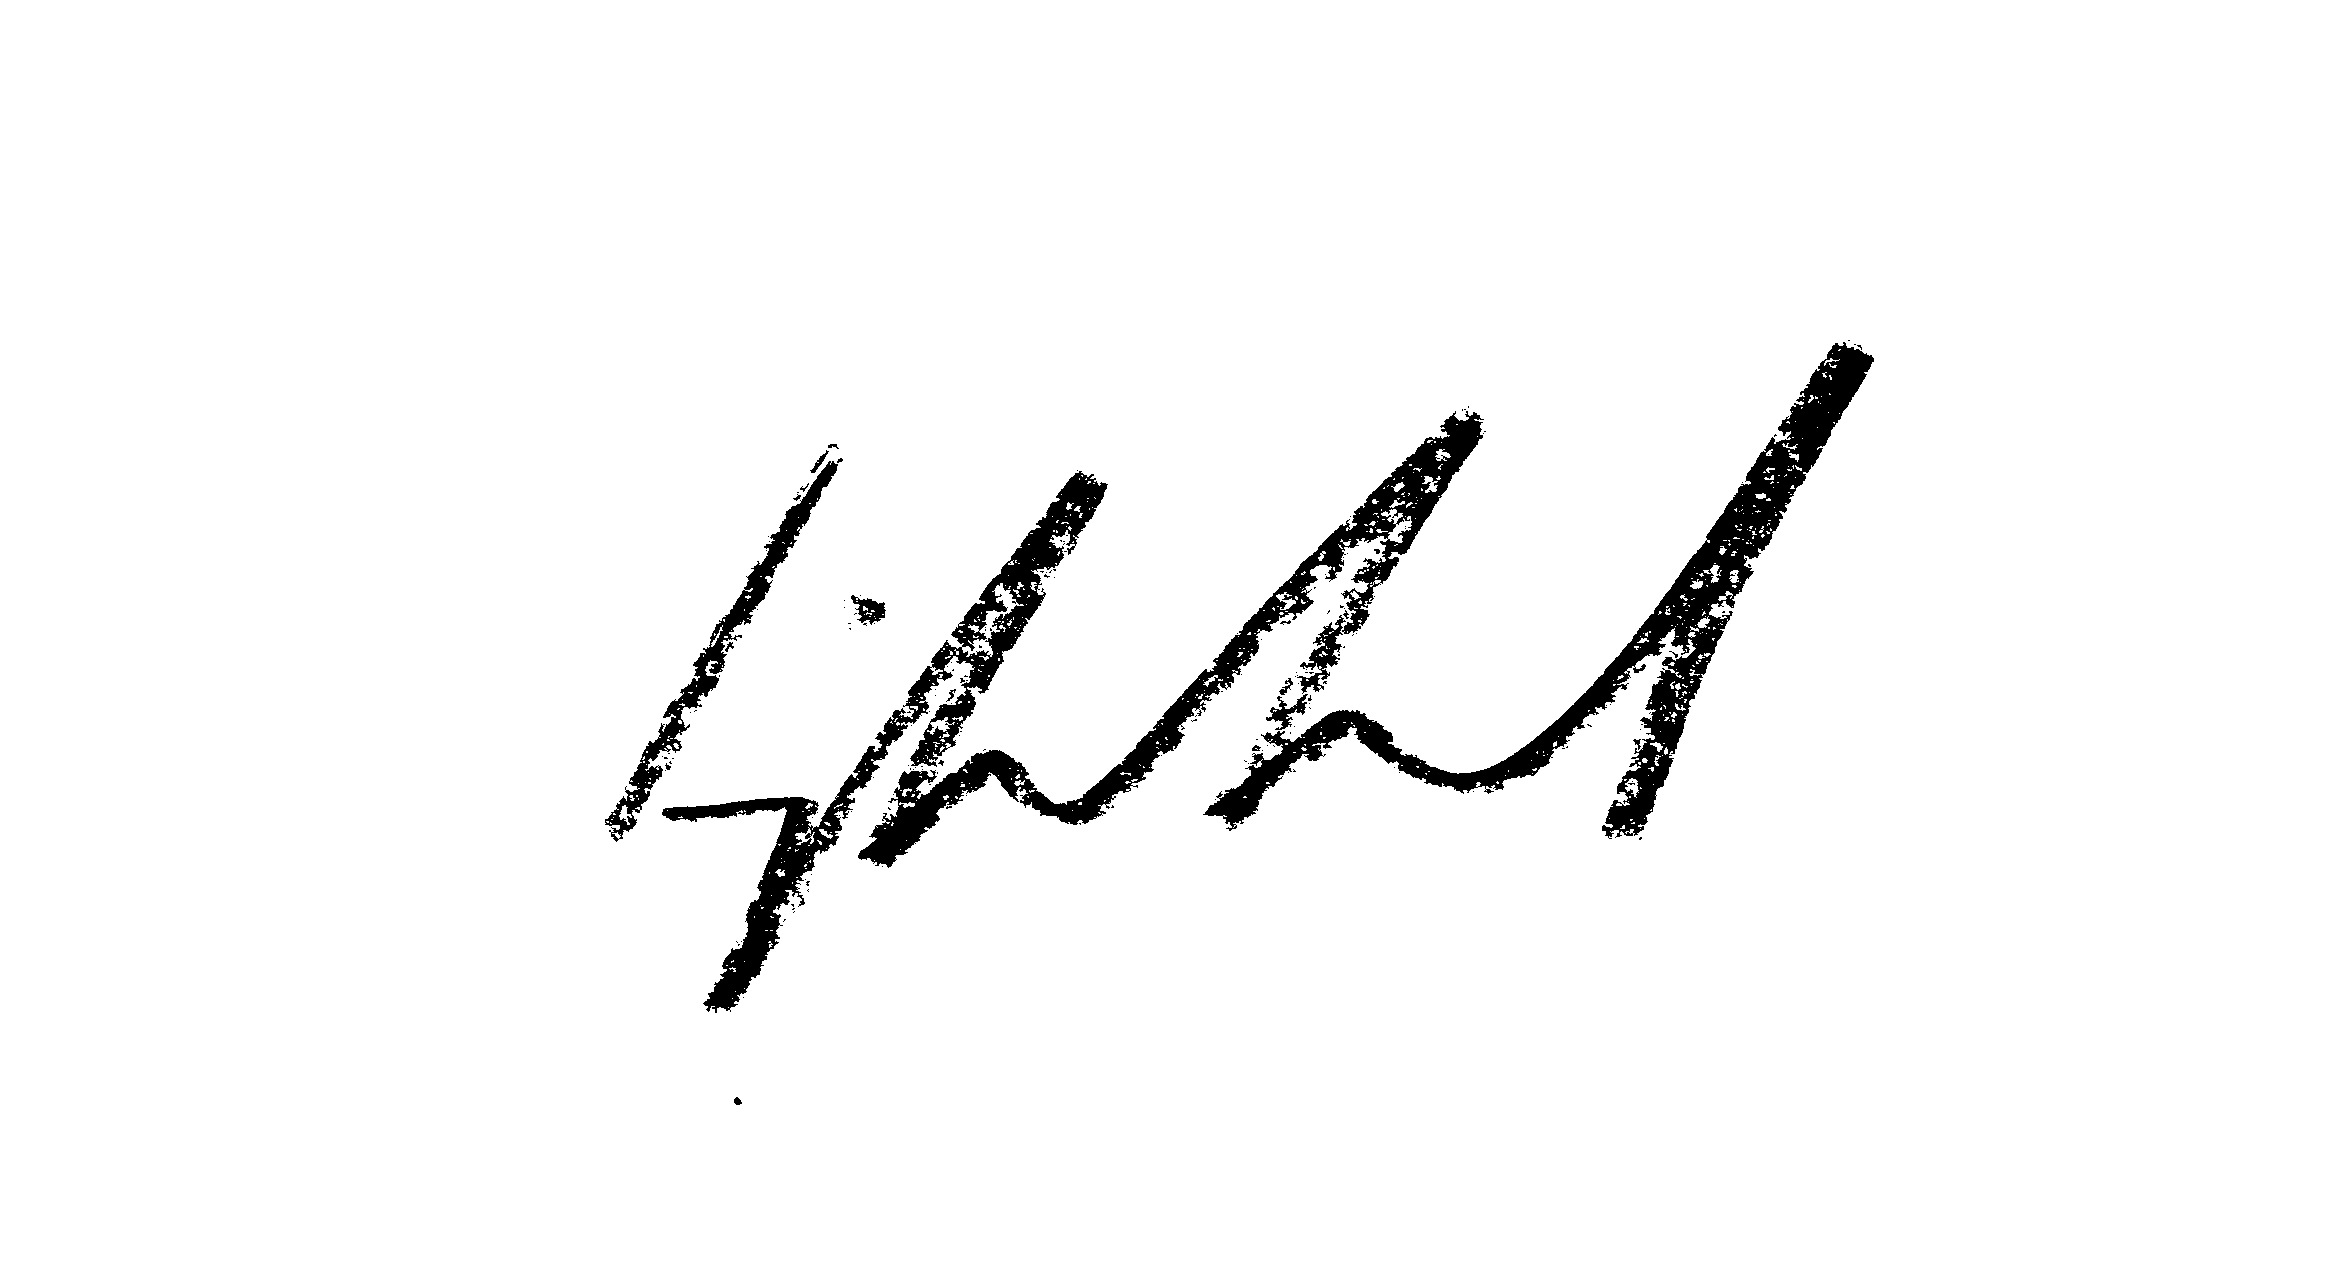 Ingrid Kamerbeek's Signature